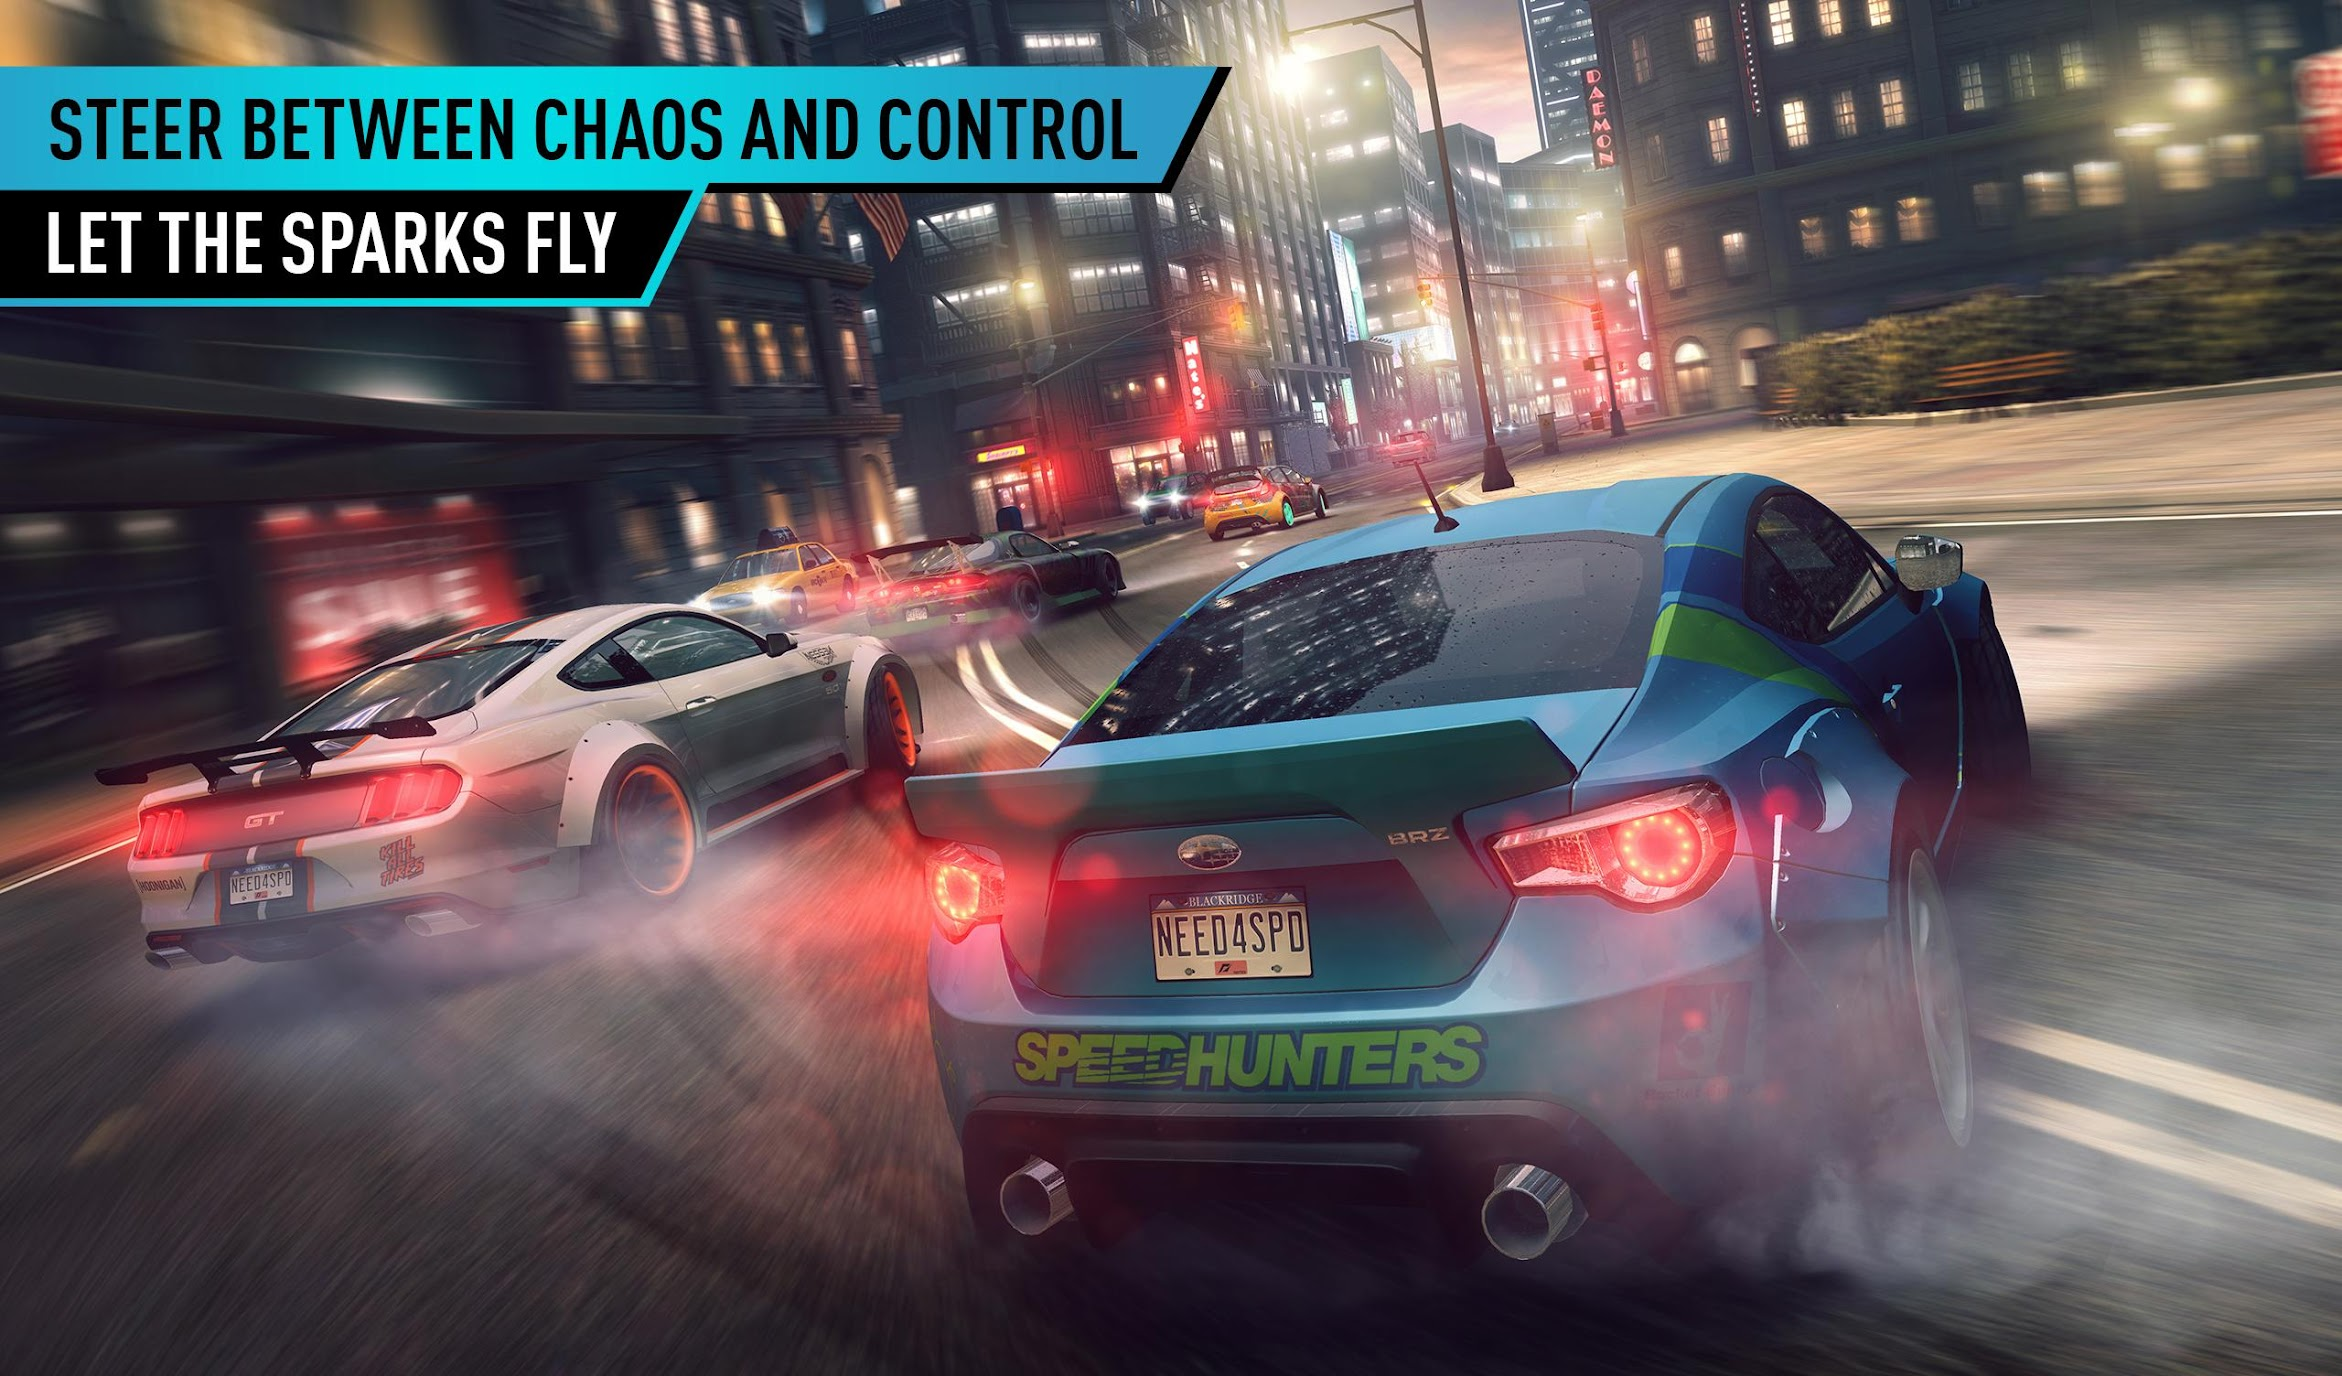 Need for Speed No Limits Mod apk (Unlimited Money/Unlocked All) GPU 3